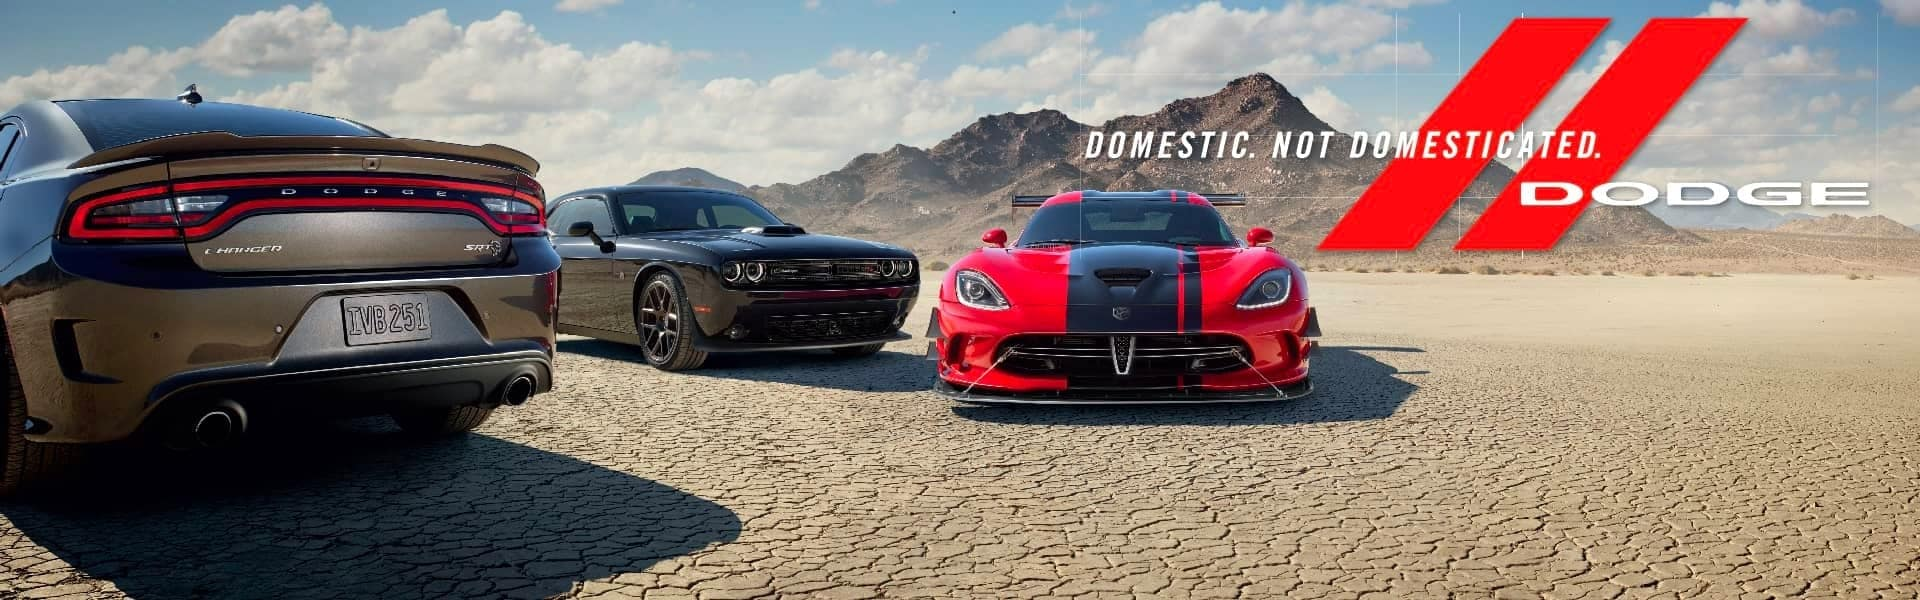 New Dodge Charger and Challenger and Viper in Desert